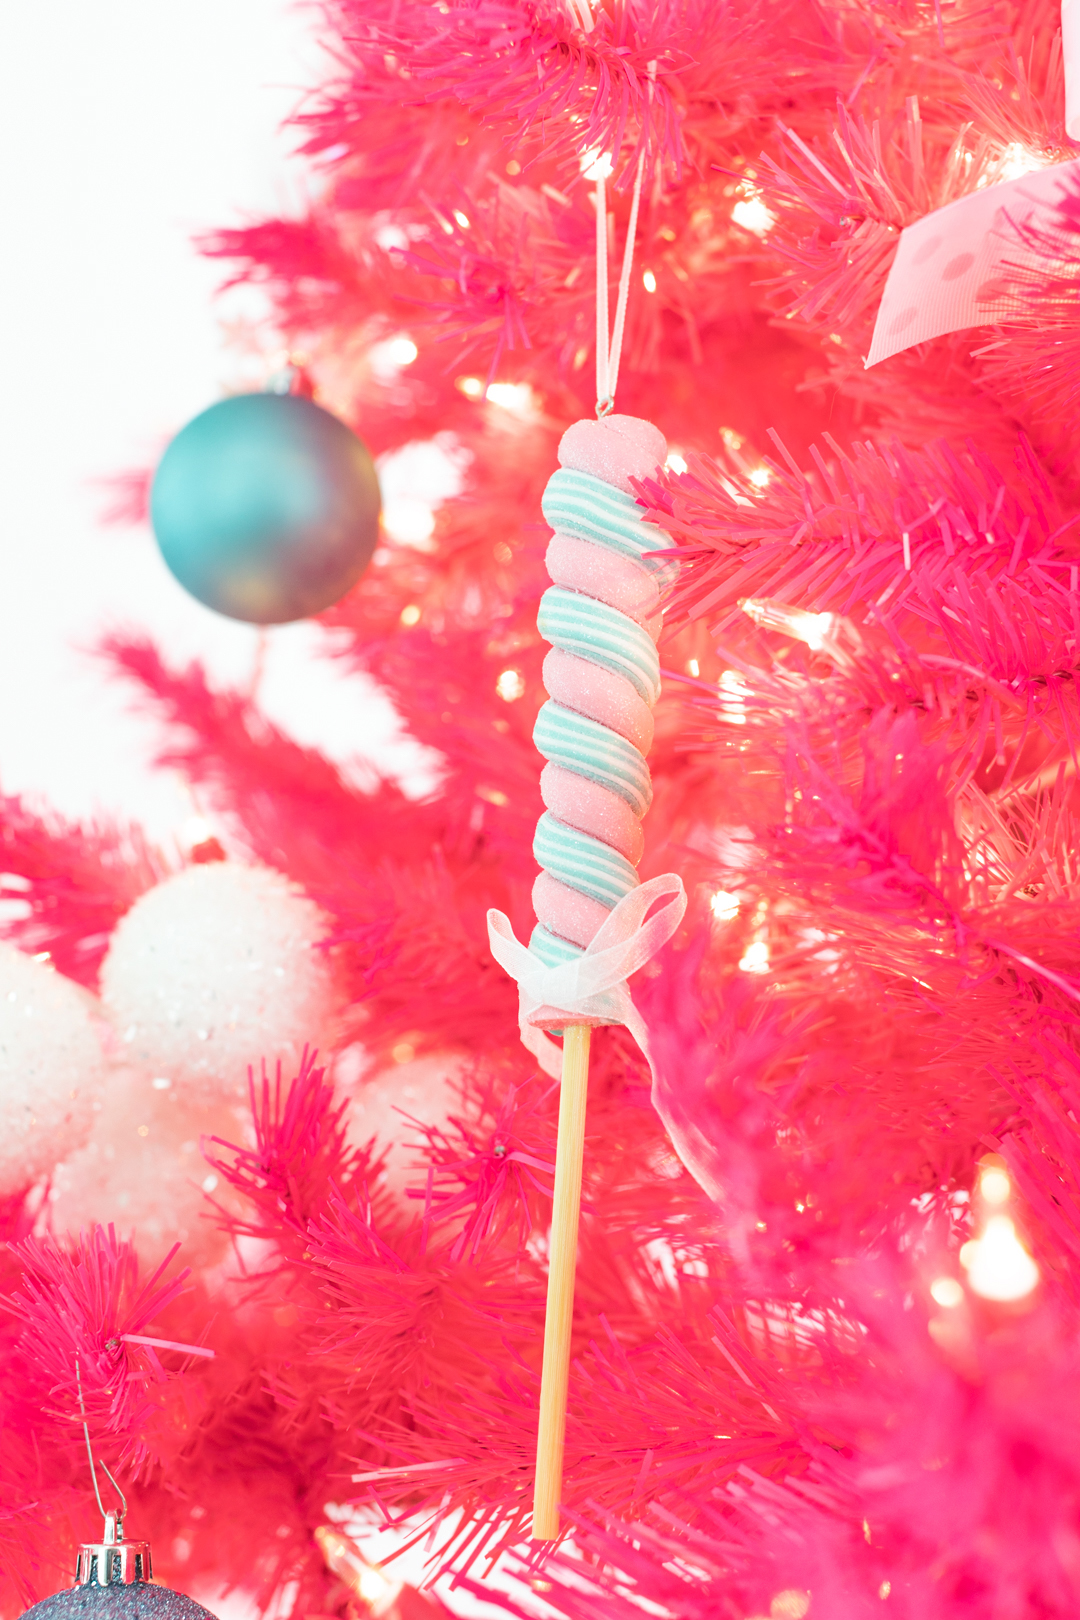 pink peppermint candy ornament